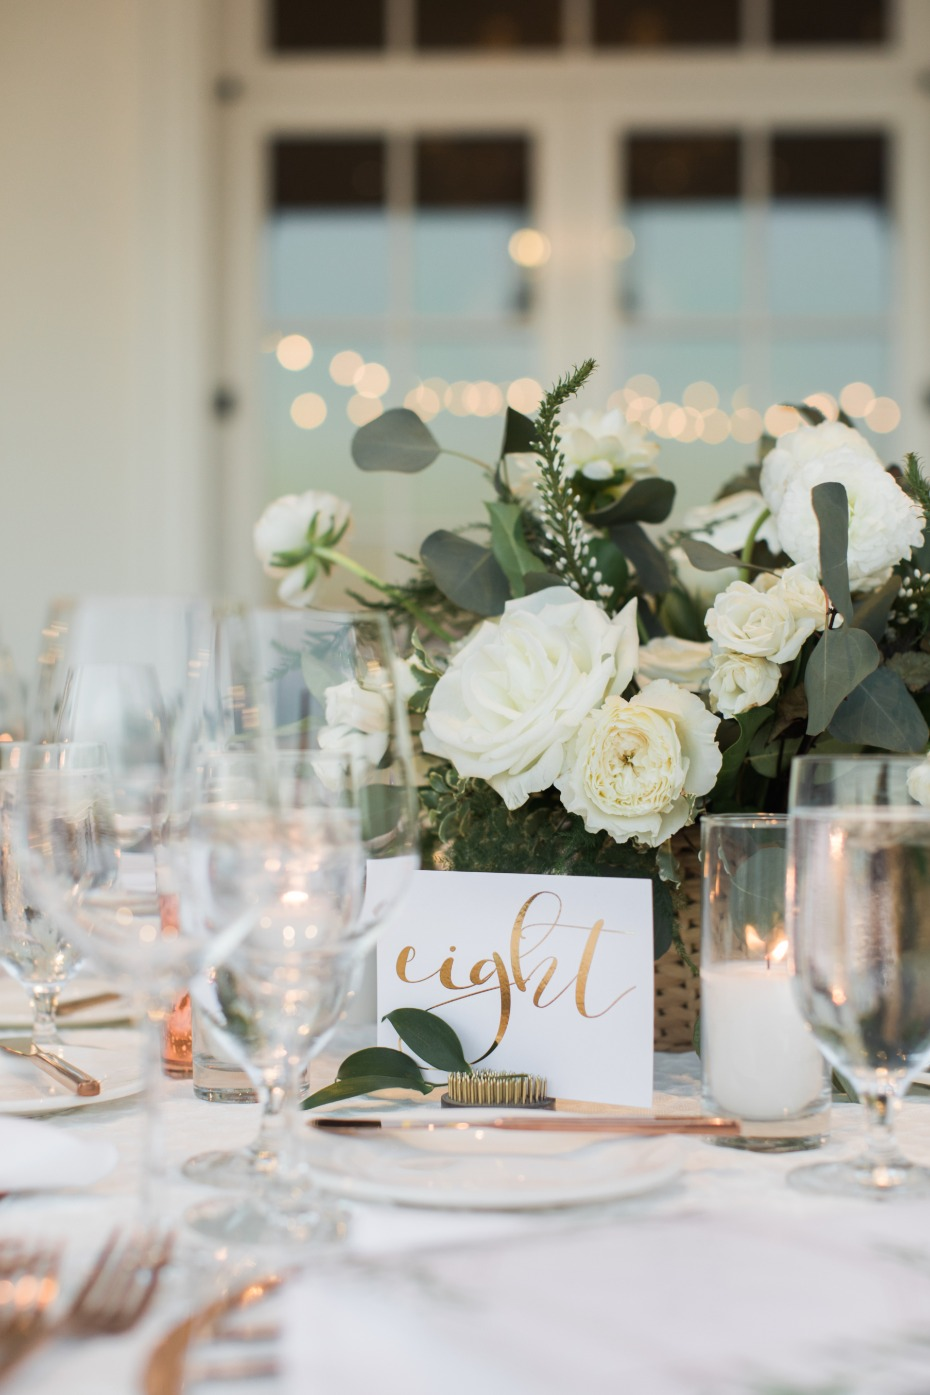 Elegant table decor for the reception